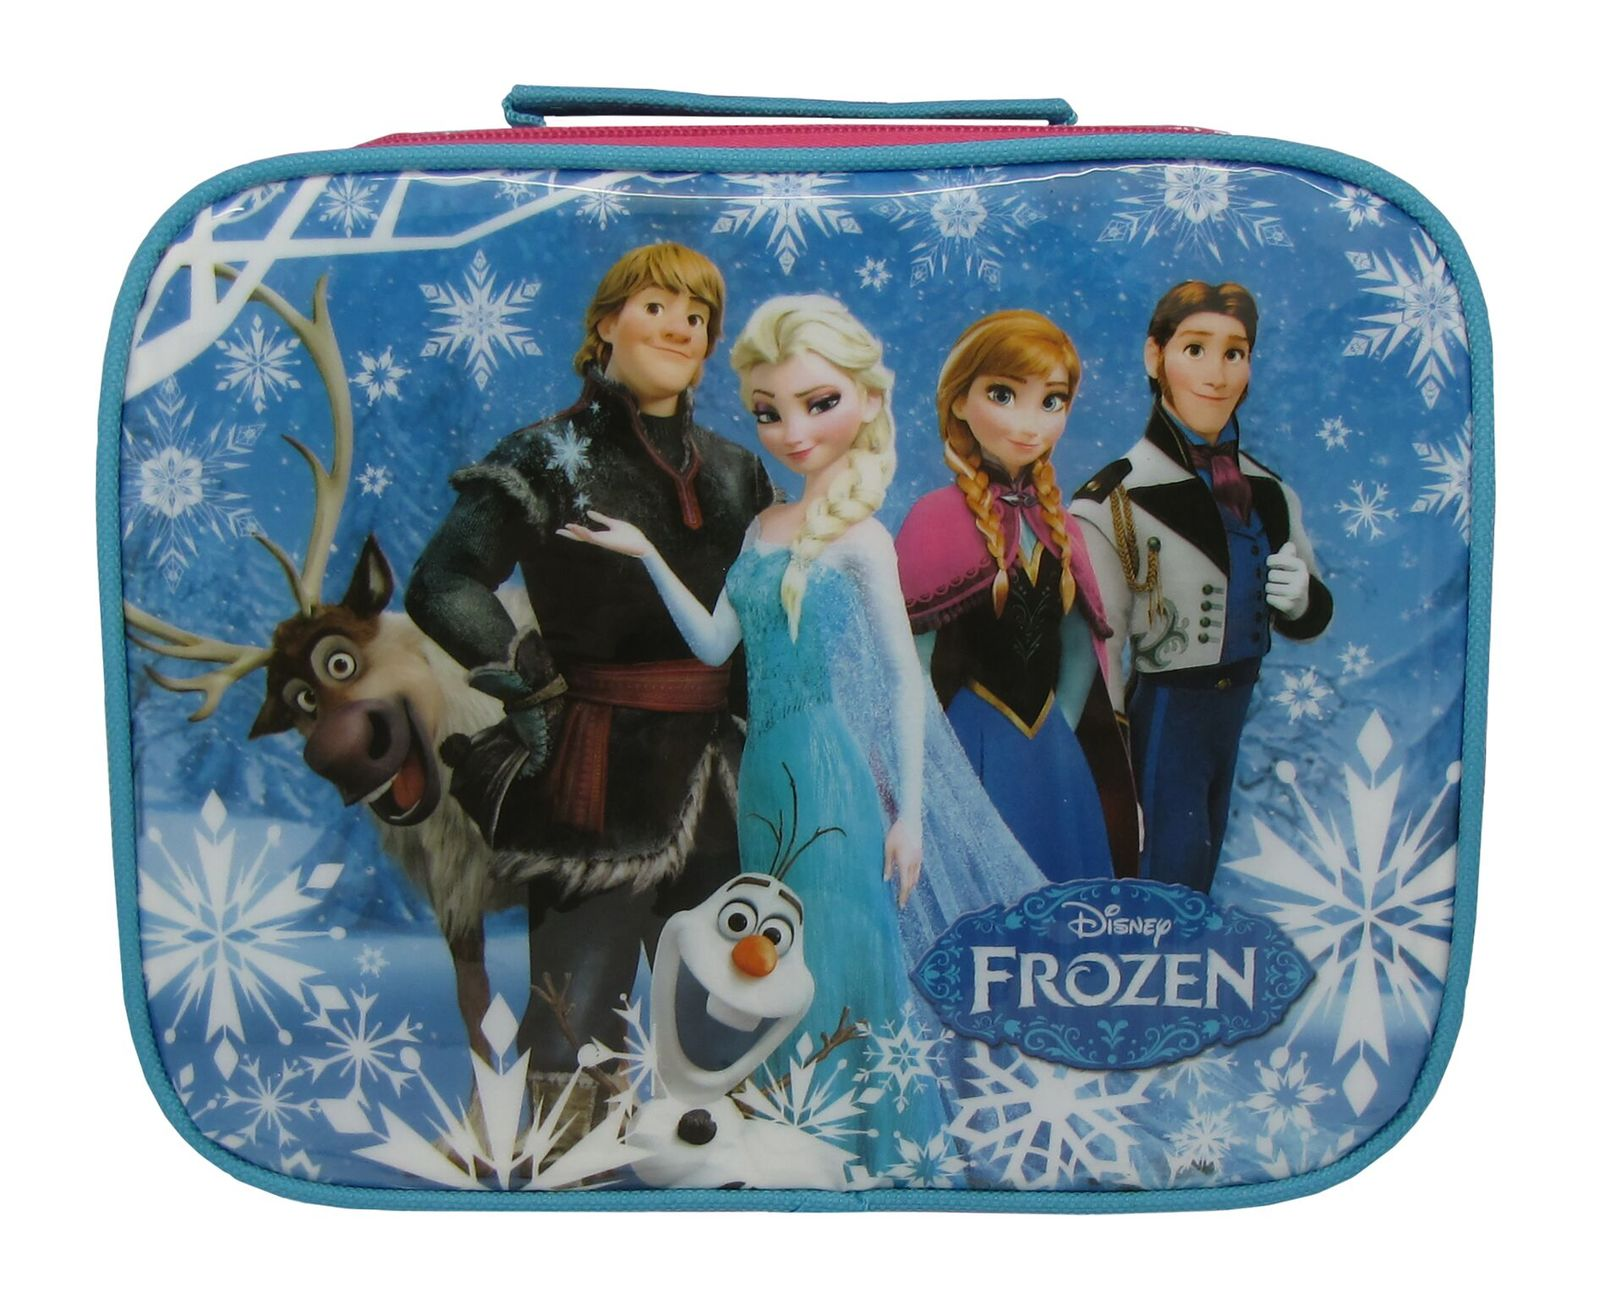 Disney Frozen Insulated Lunch Bag image